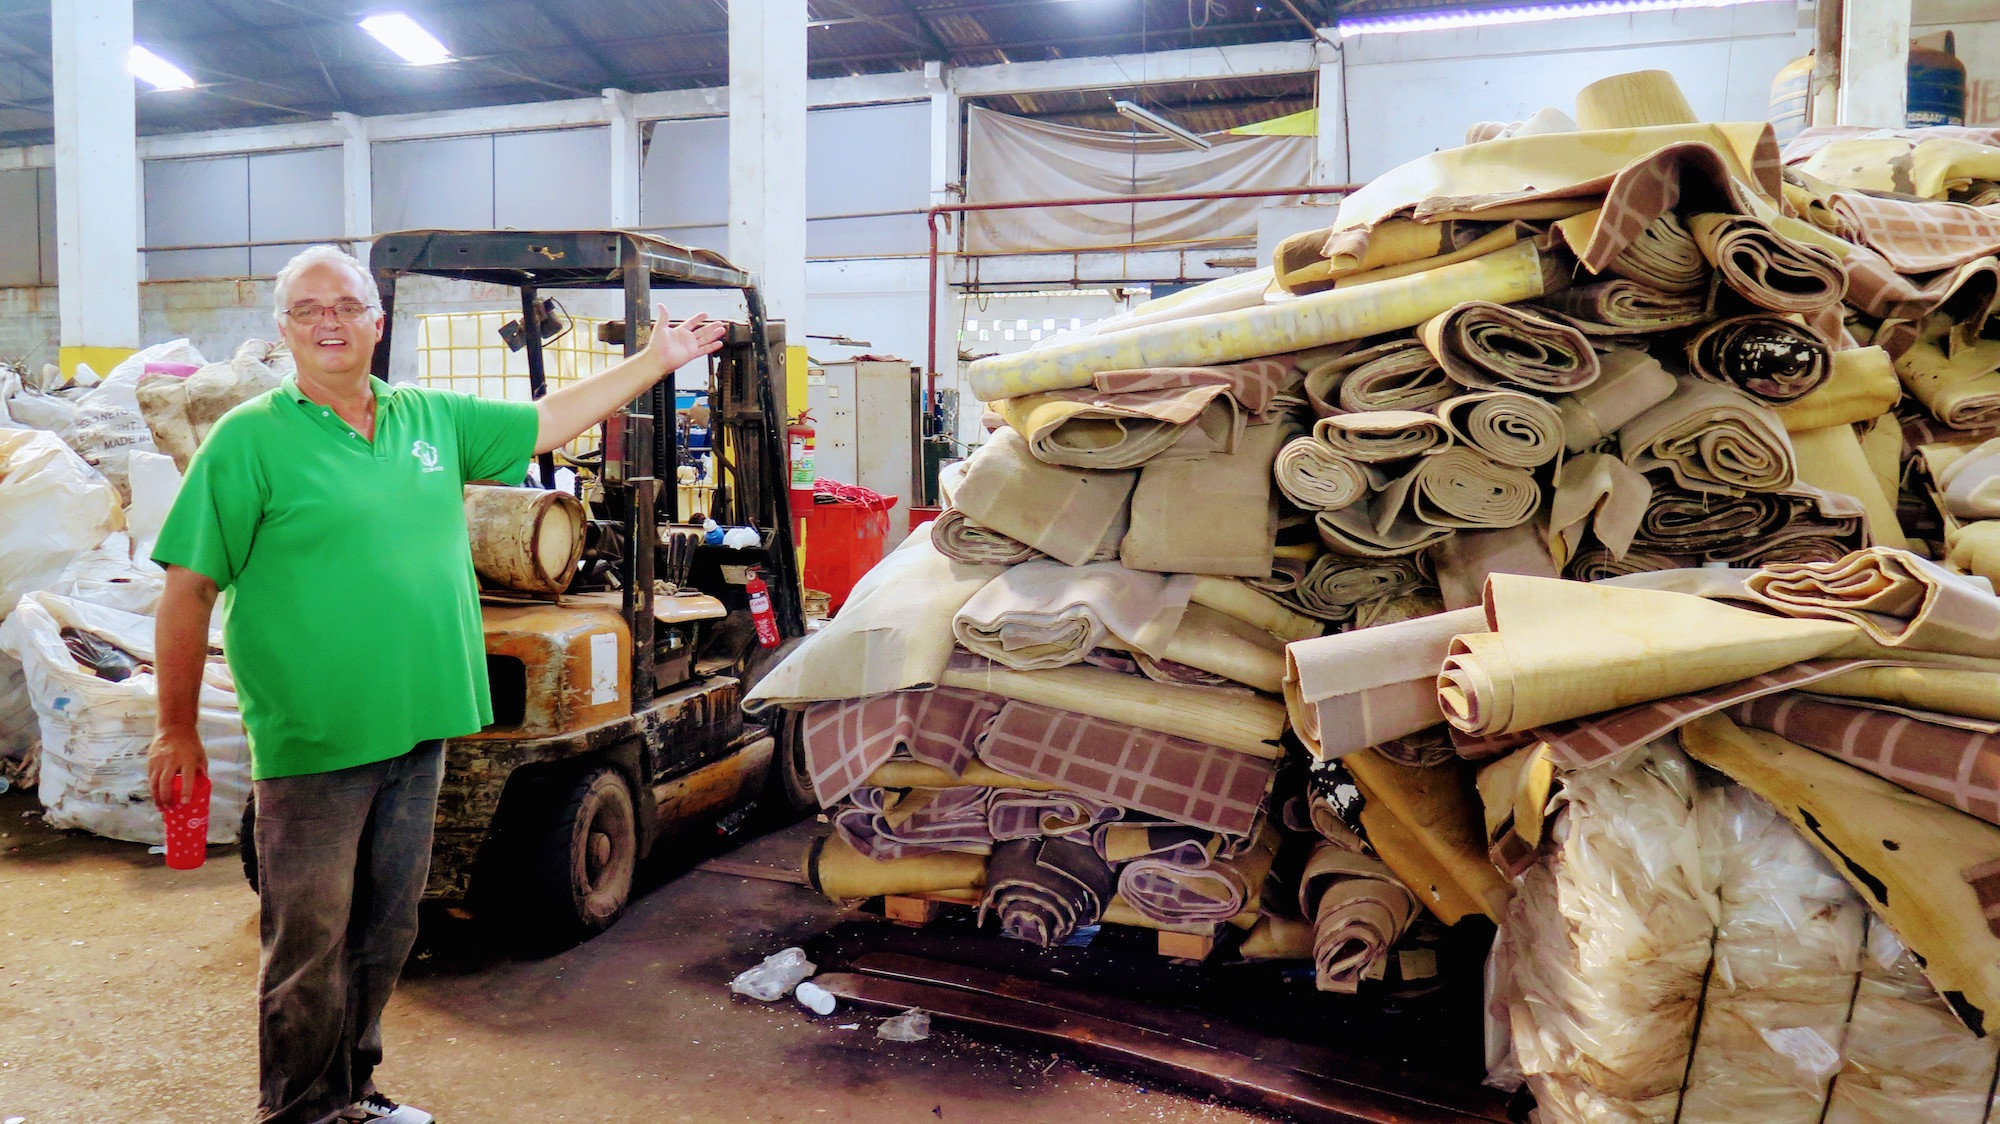 Edson shows large pile of hotel carpet to be recycled into profit